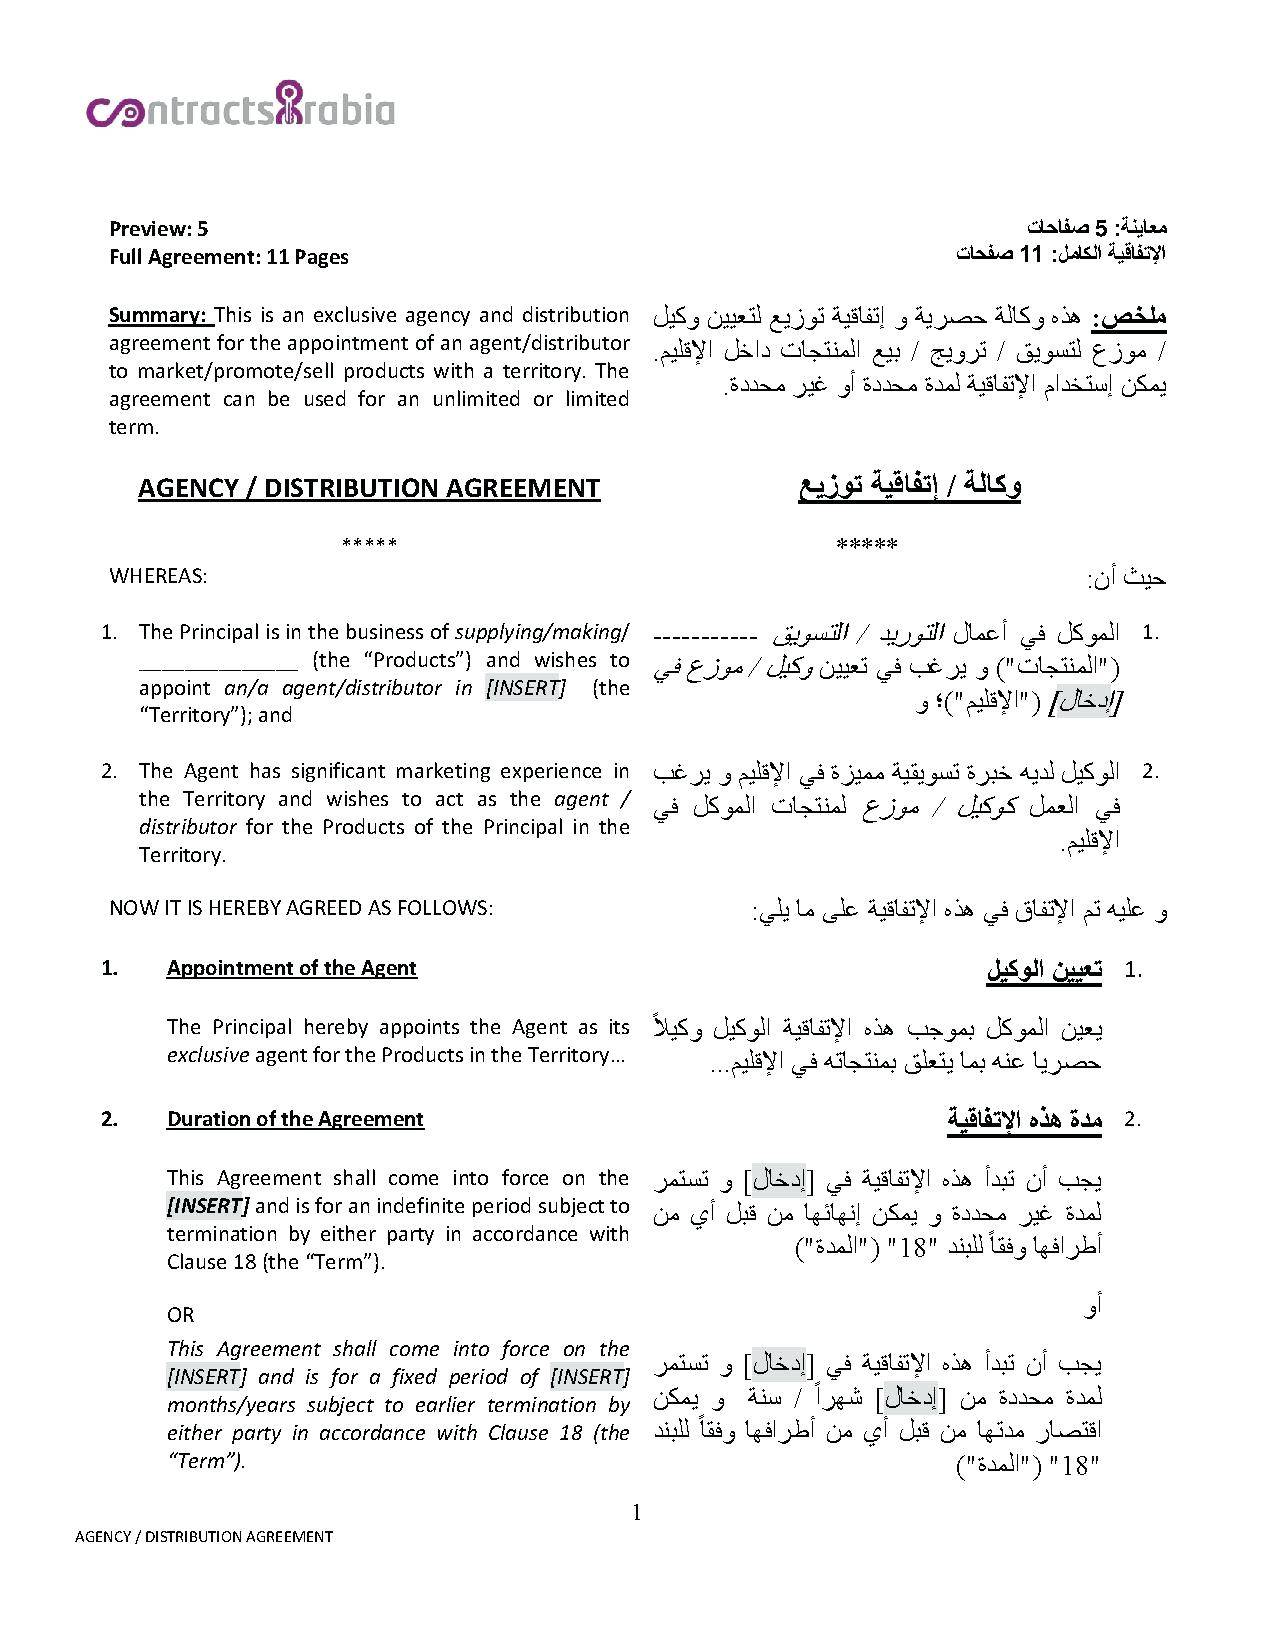 Sweat Equity Partnership Agreement Template